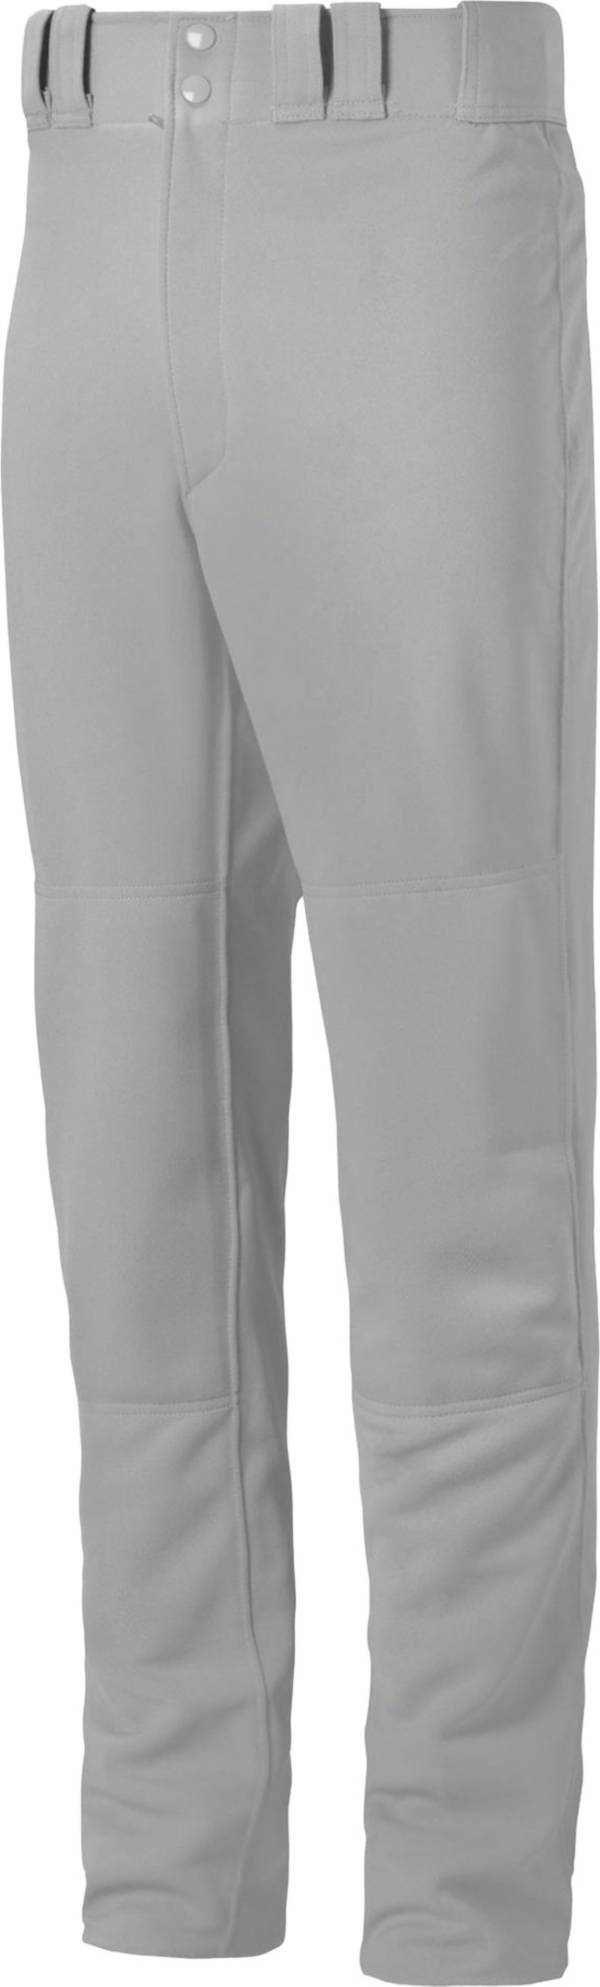 Mizuno Men's Premier Pro Pants product image